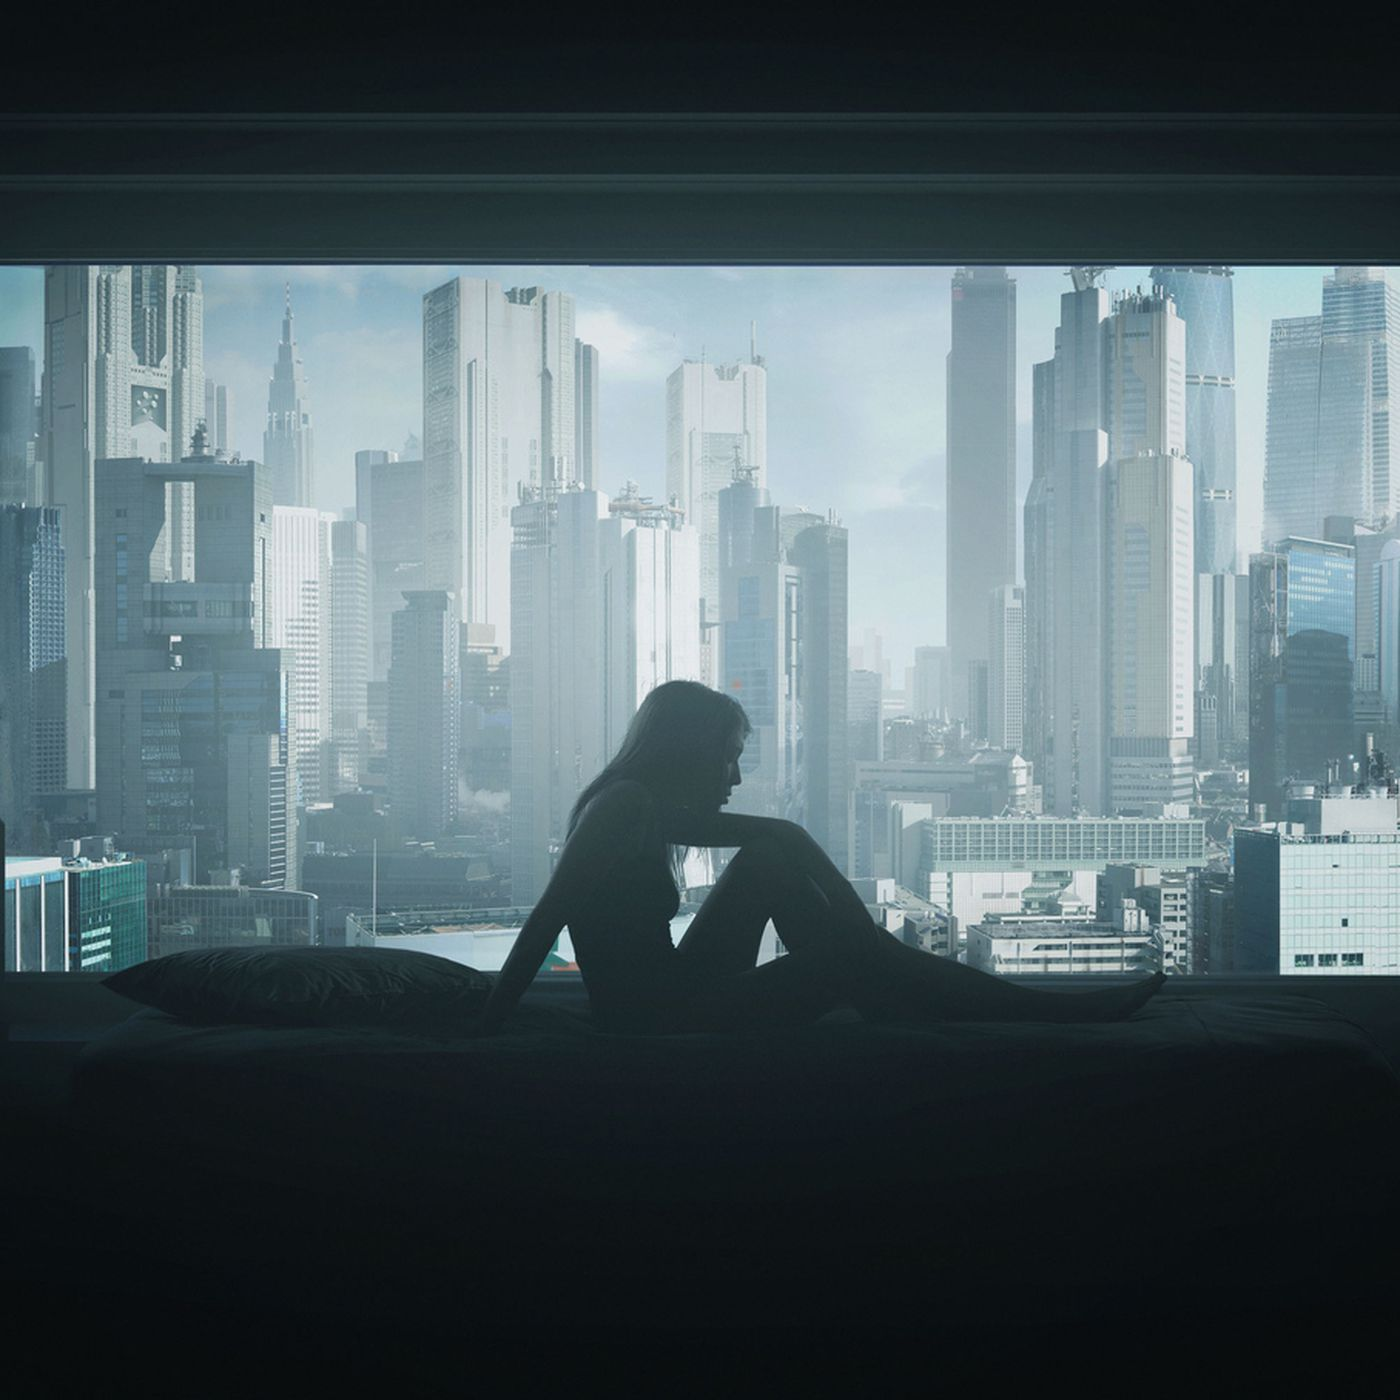 Ghost In The Shell Intro Recreated In Haunting Still Life The Verge